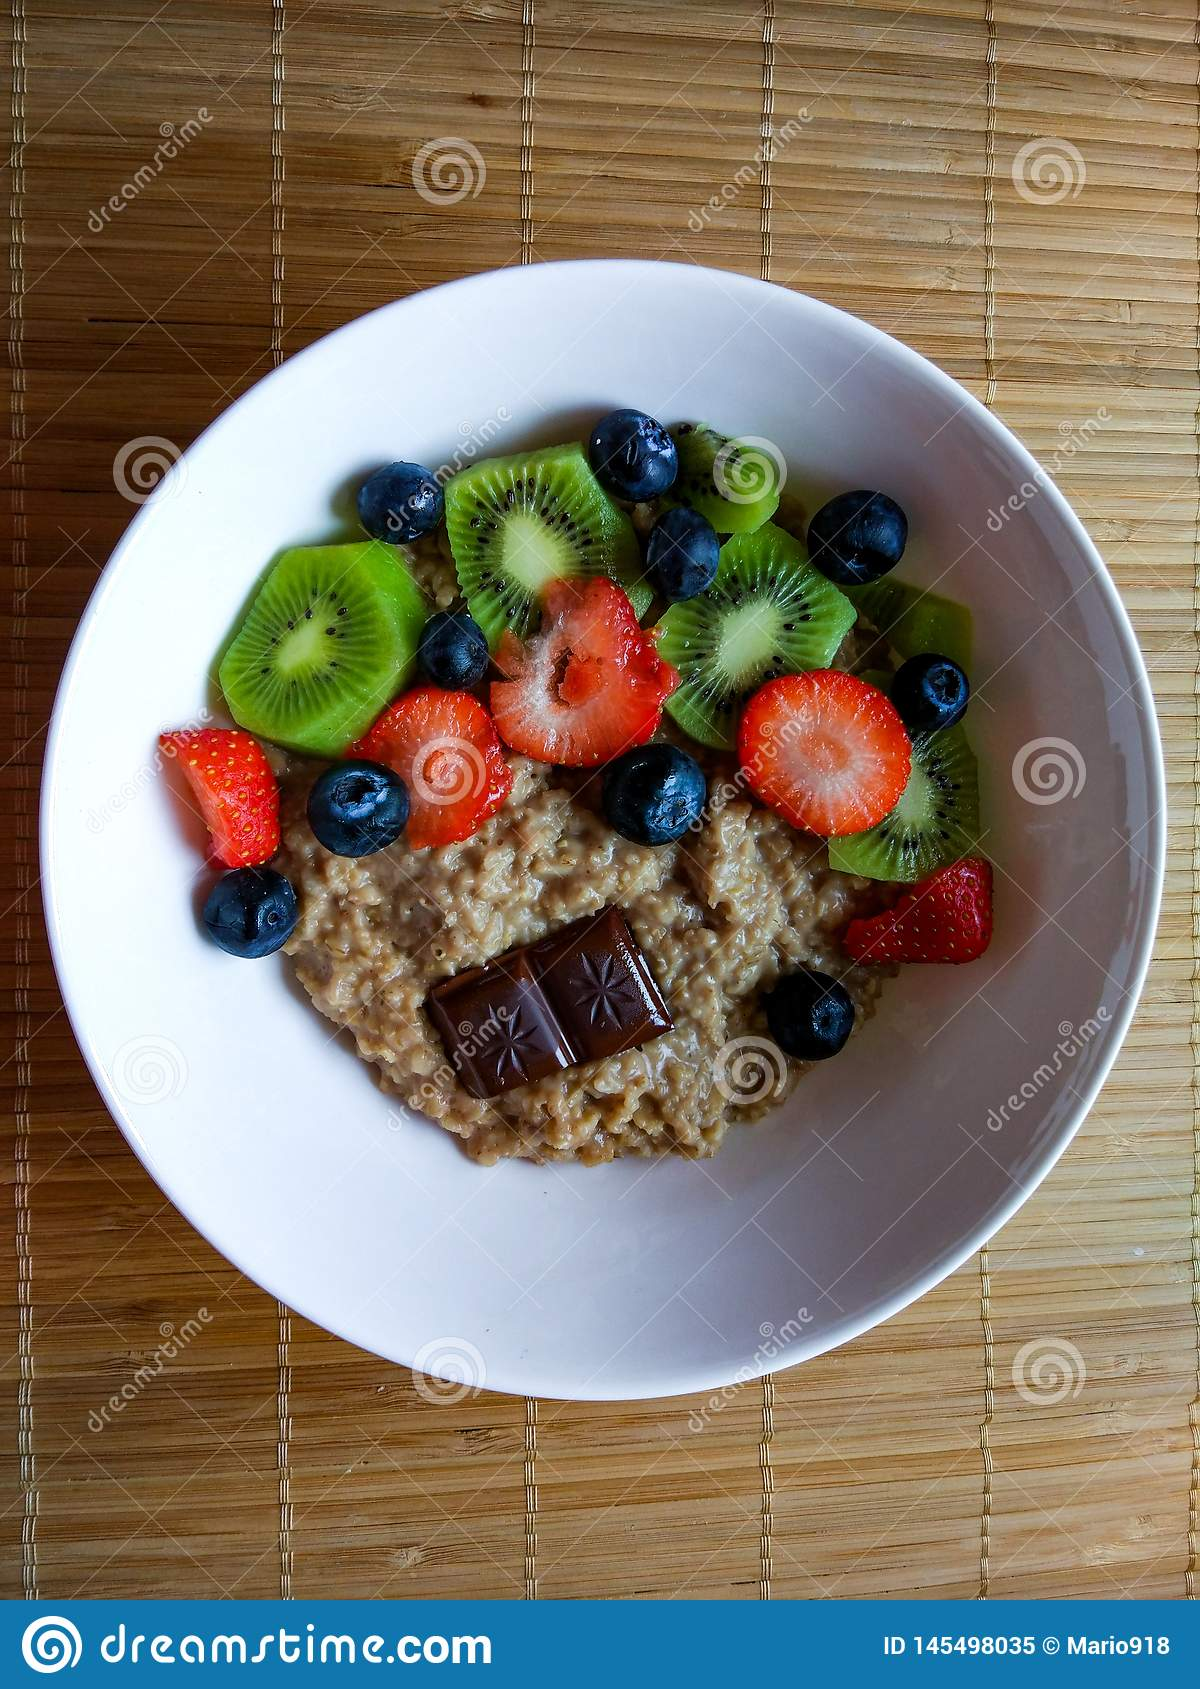 Breakfast bowl with strawberries, kiwi, blueberry with muesli and dark chocolate from above